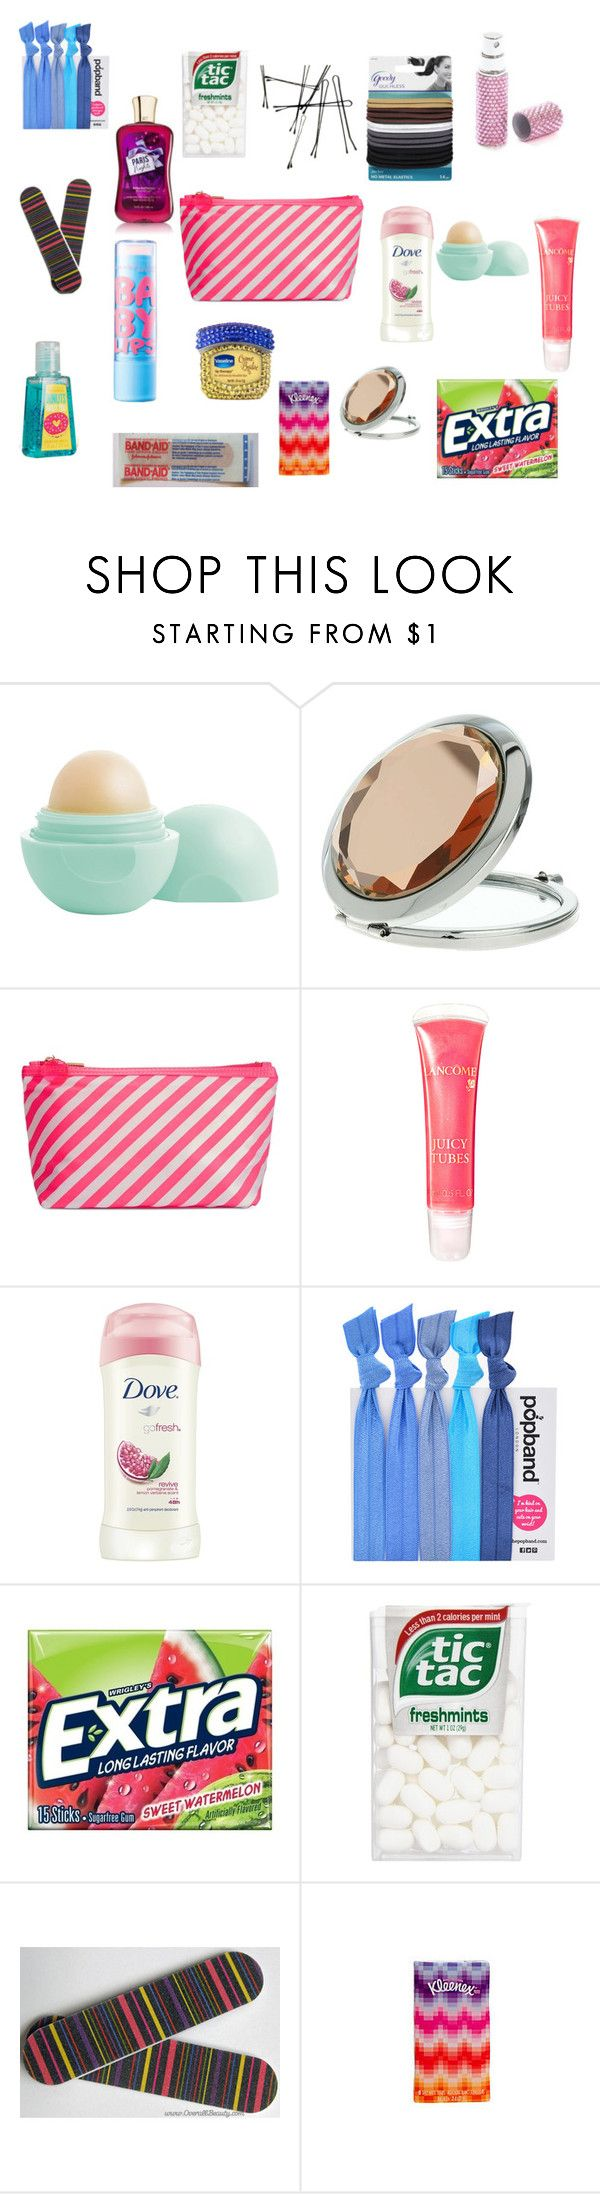 """Middle School Girl Survival Kit"" by alyssa-07 on Polyvore featuring Eos, Miss Selfridge, ban.do, Lancôme, Dove, Popband and girly. Yo tengo un espejo igualito al de la imagen"